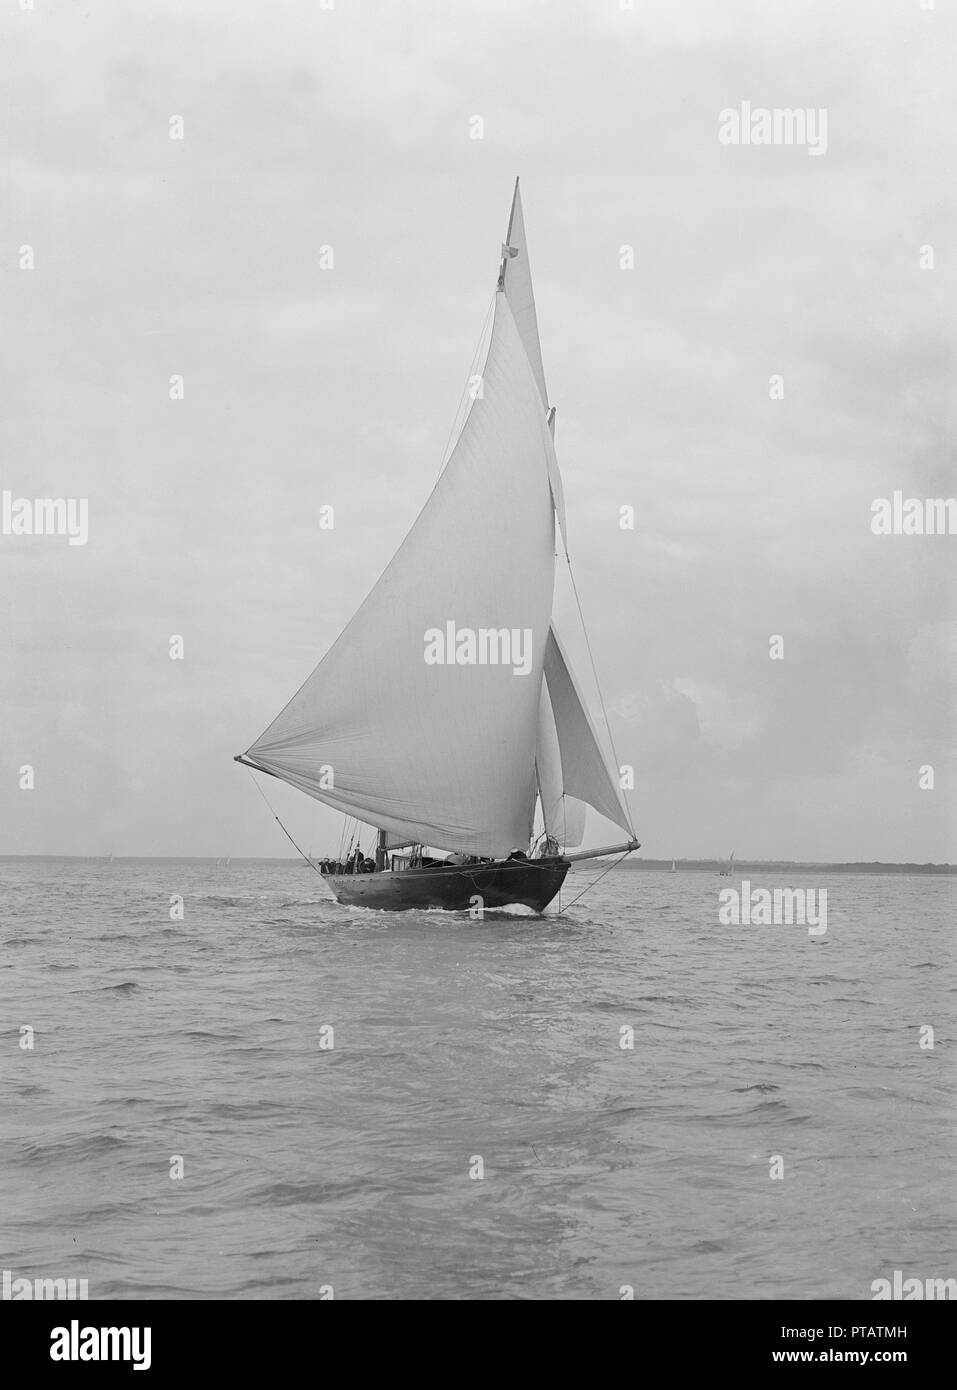 The 32 metre ketch 'Joyette' running downwind, 1922. 'Joyette' was designed by Charles Nicholson and launched in 1907. - Stock Image